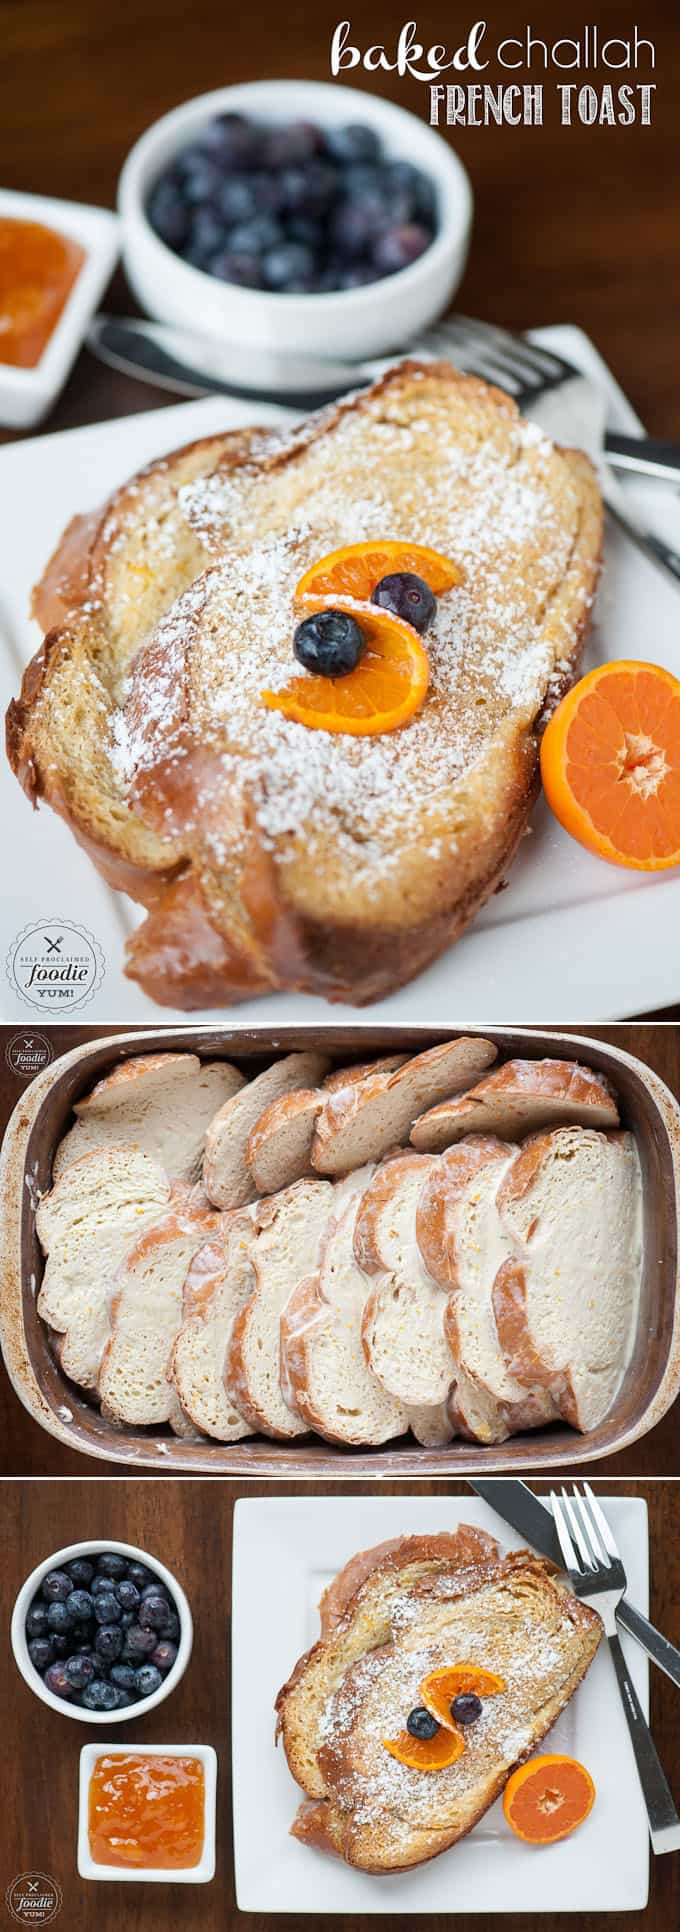 Challah is the perfect bread for french toast, and this heavenly Baked Challah French Toast can be made ahead the night before for an easy family breakfast.